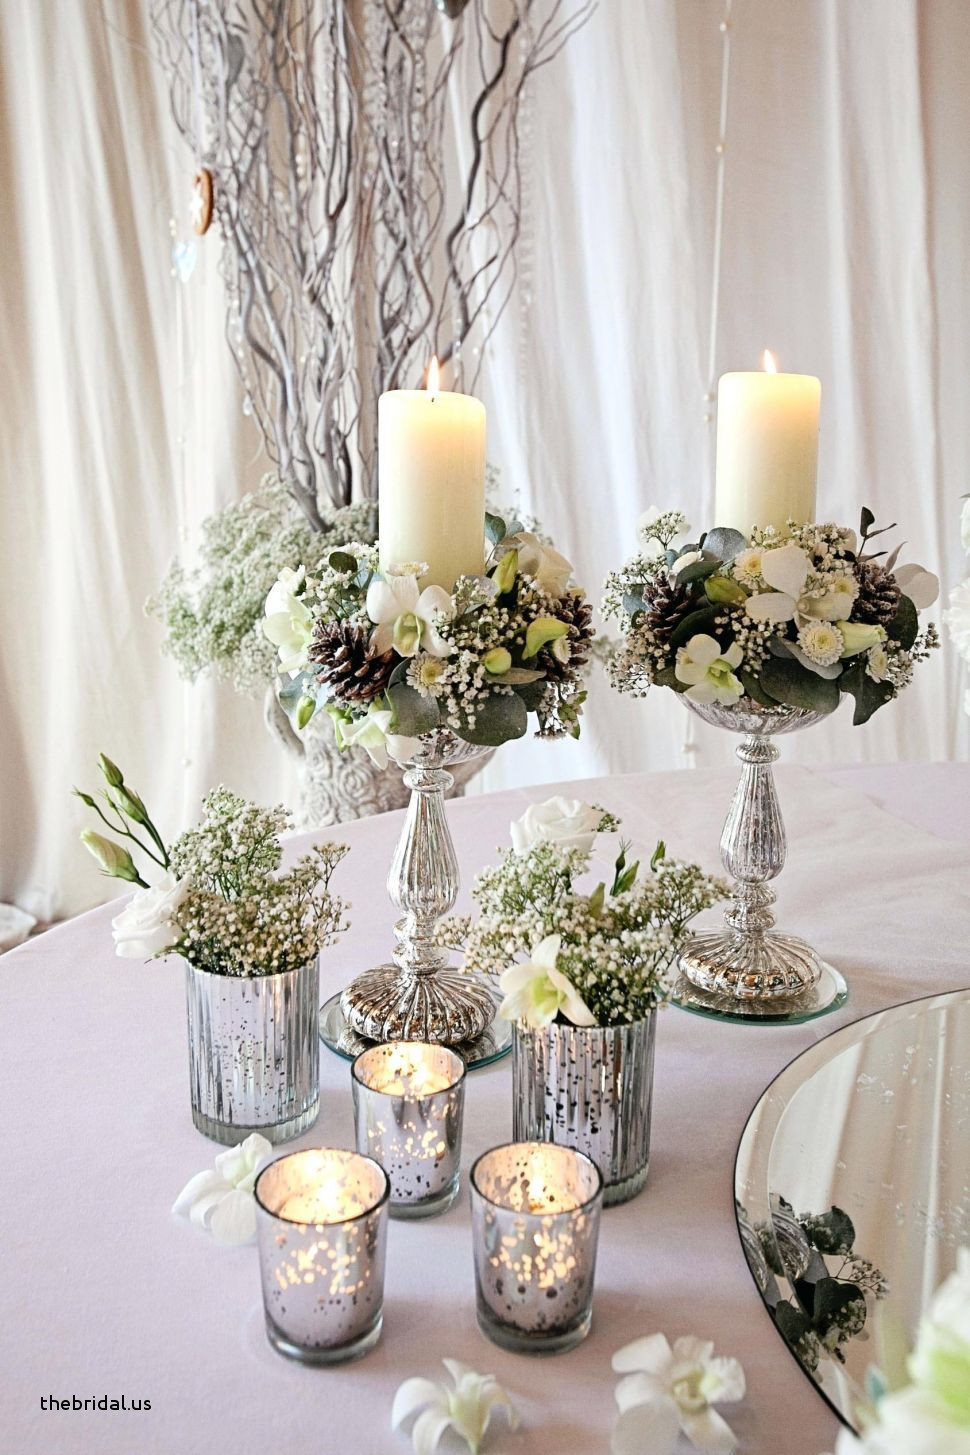 cheap wedding vases for sale of beautiful unique wedding reception ideas on a budget the bridal in living room vases wholesale new h vases big tall i 0d for cheap